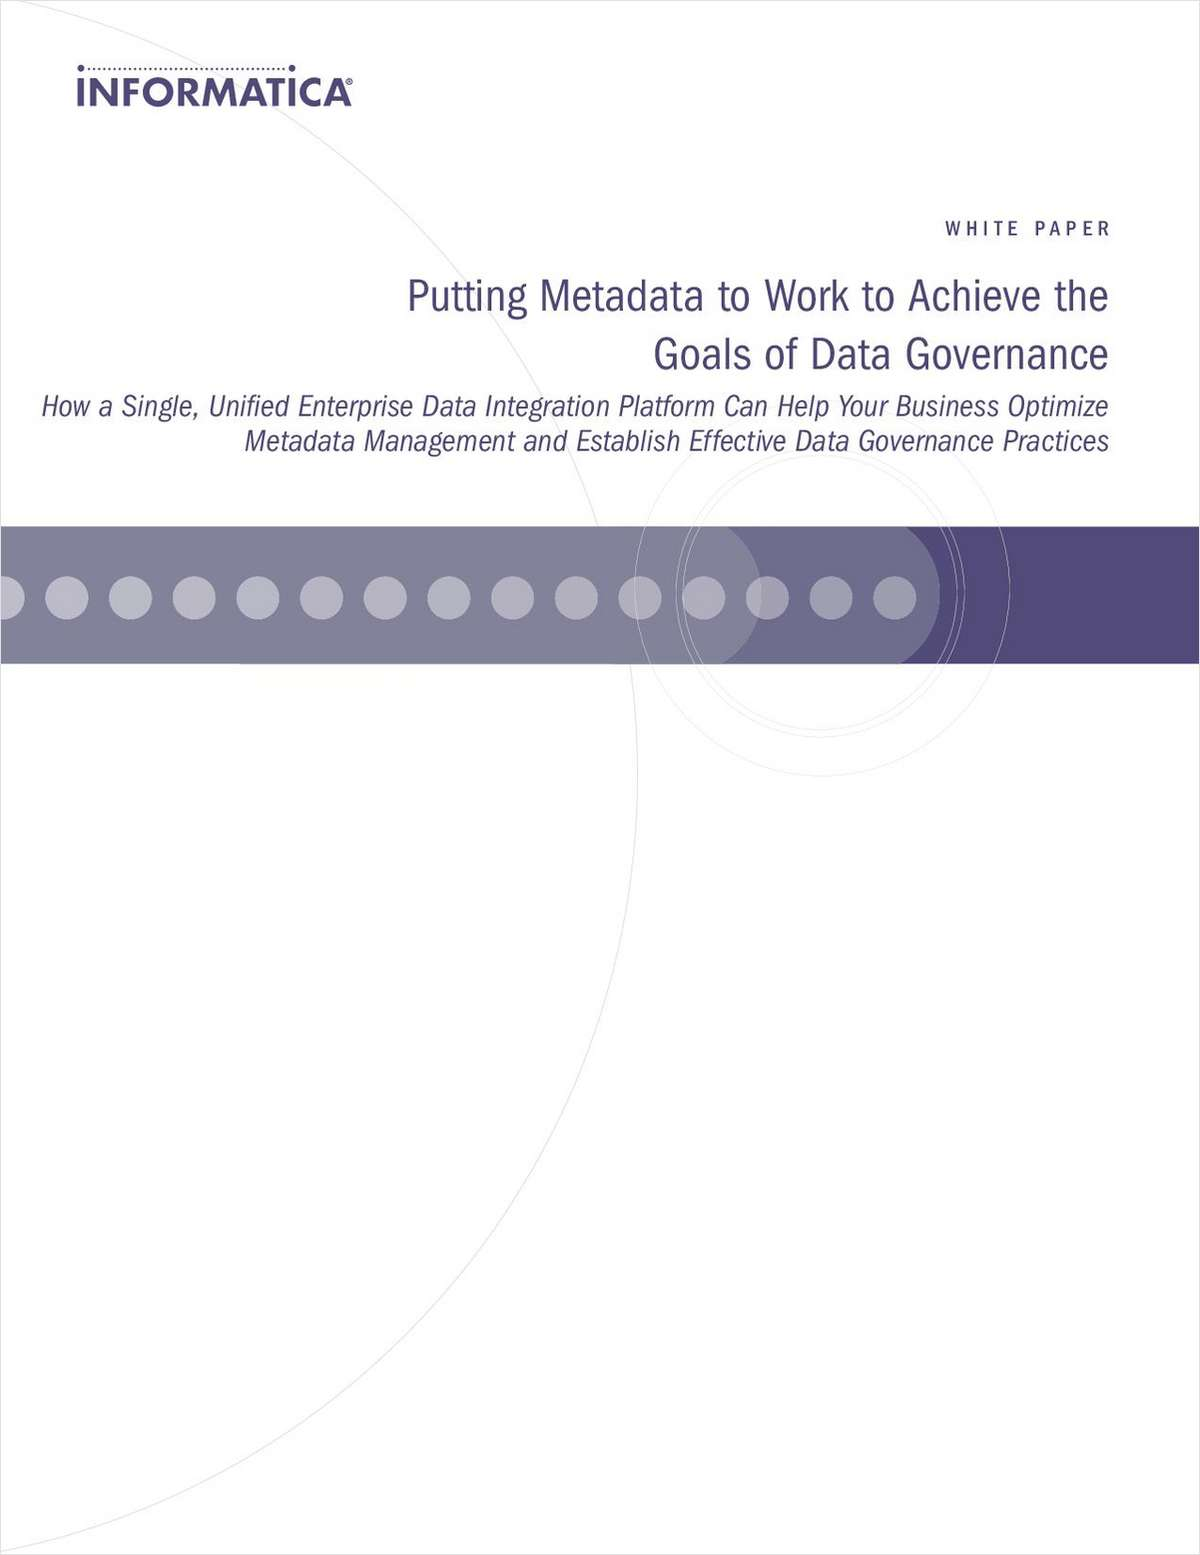 Putting Metadata to Work to Achieve the Goals of Data Governance